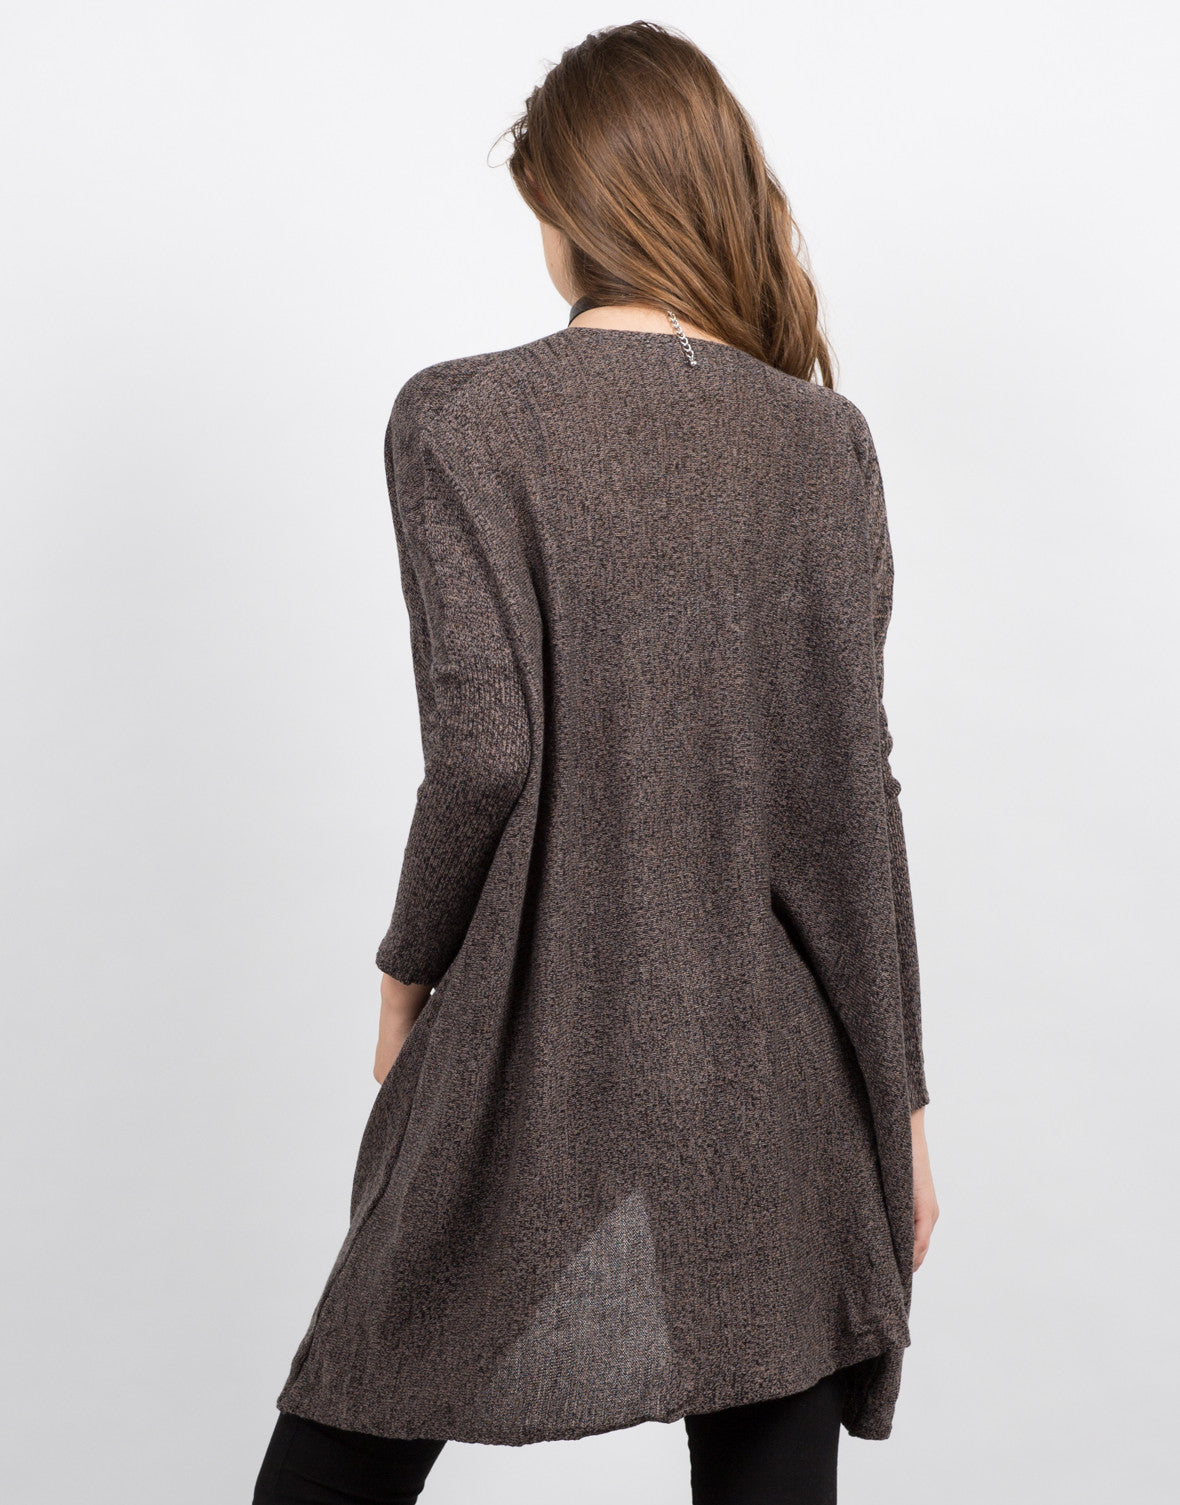 Back View of Twist Front Sweater Top